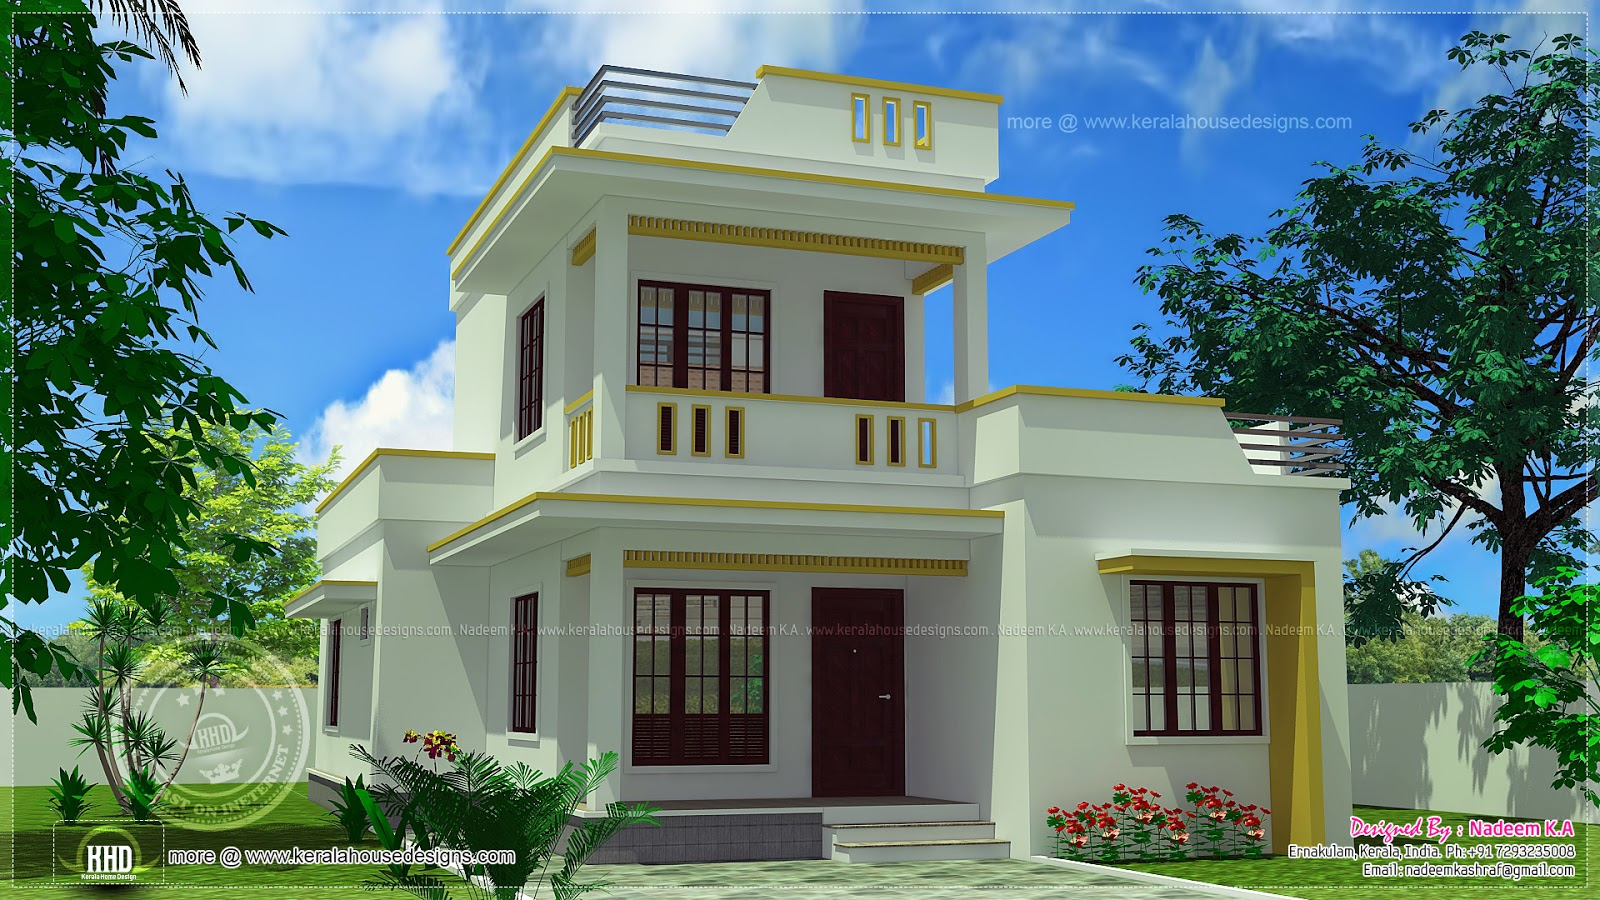 August 2013 kerala home design and floor plans - Home design pic ...